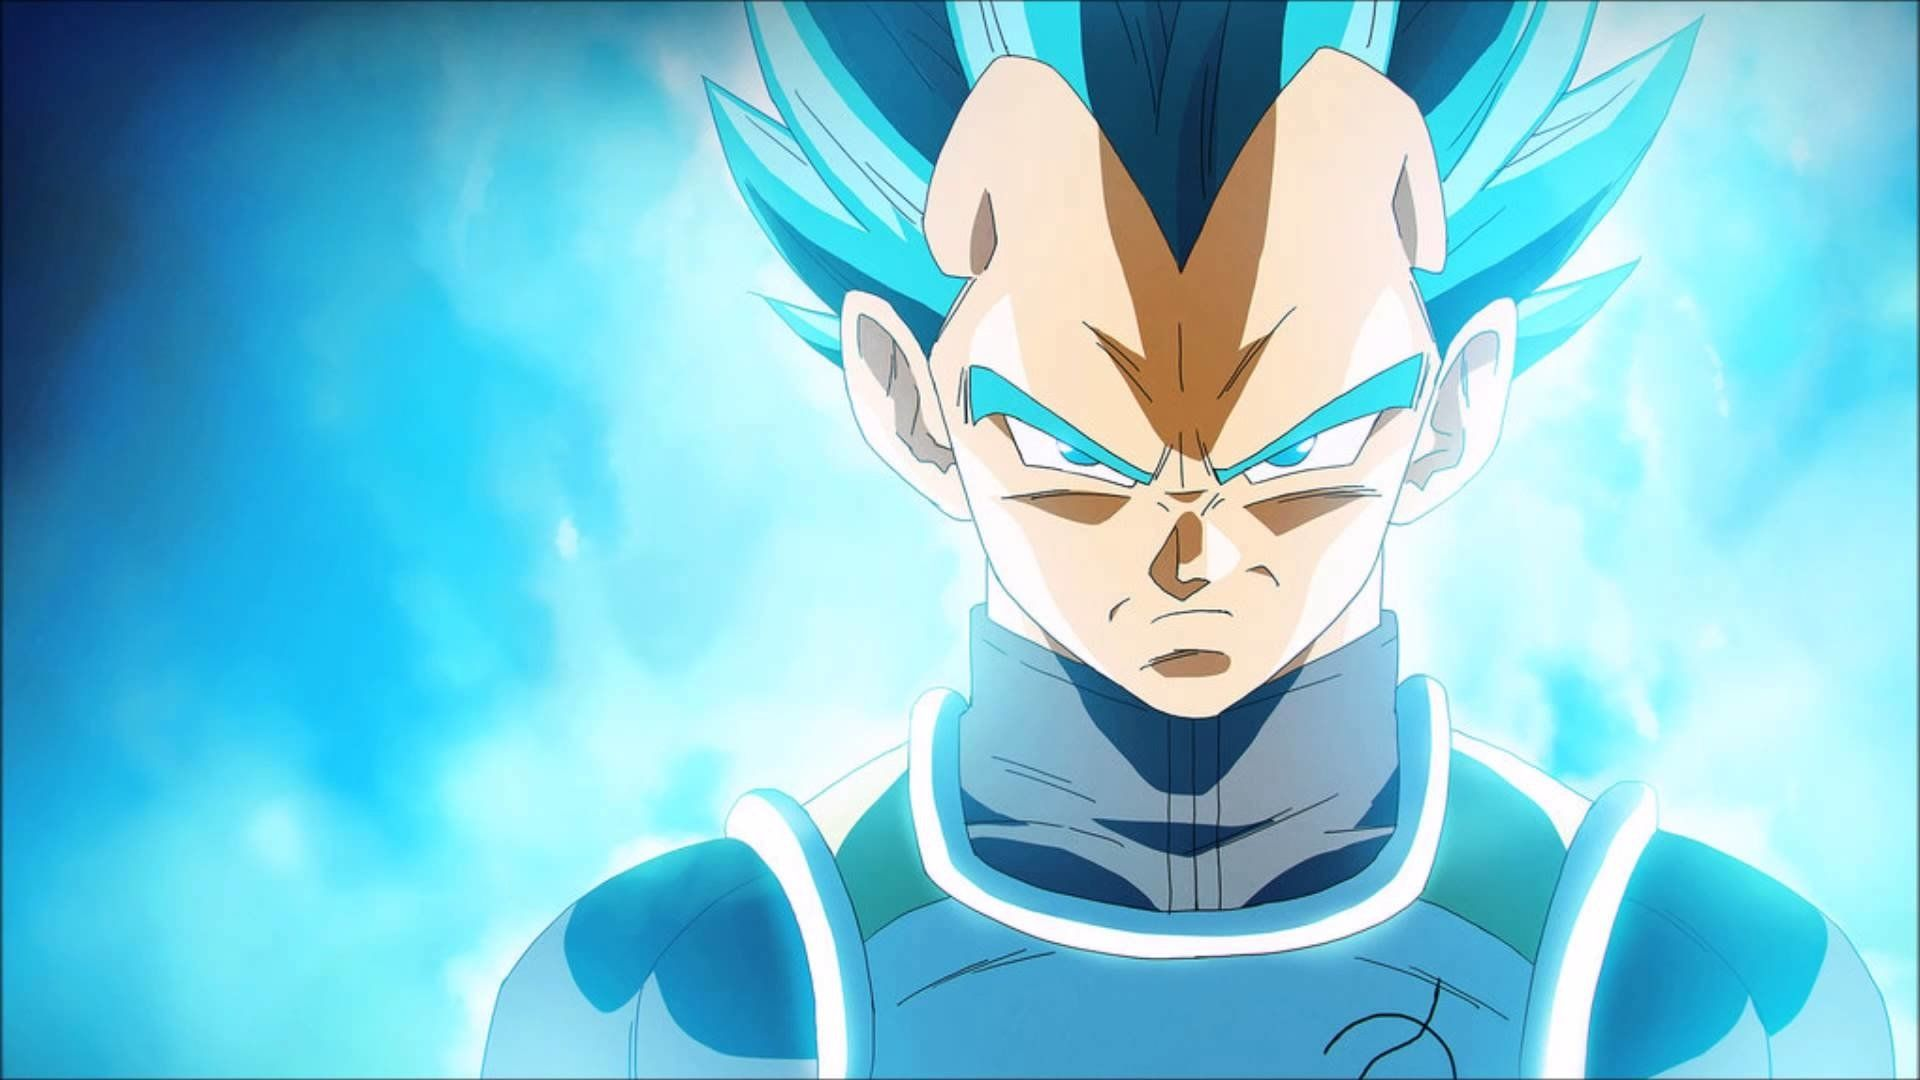 What are Vegeta Wallpaper and How to Get It for Your Desktop?